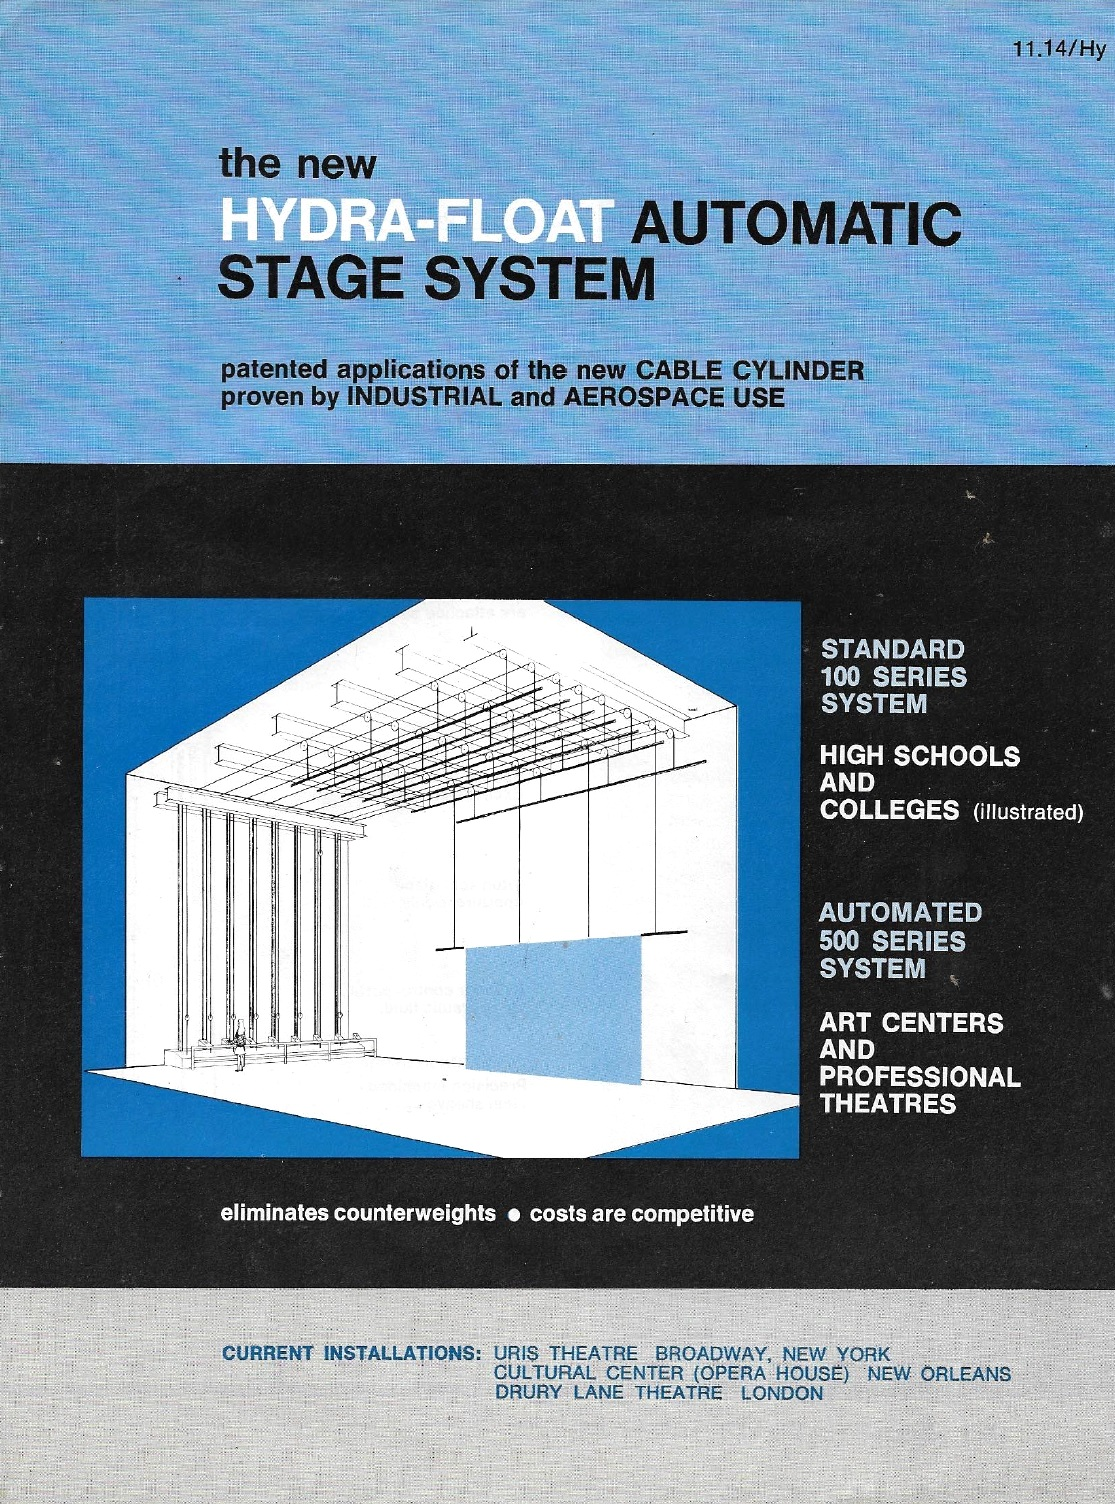 VINTAGE THEATRE CATALOGS: HYDRA FLOAT AUTOMATIC STAGE SYSTEM